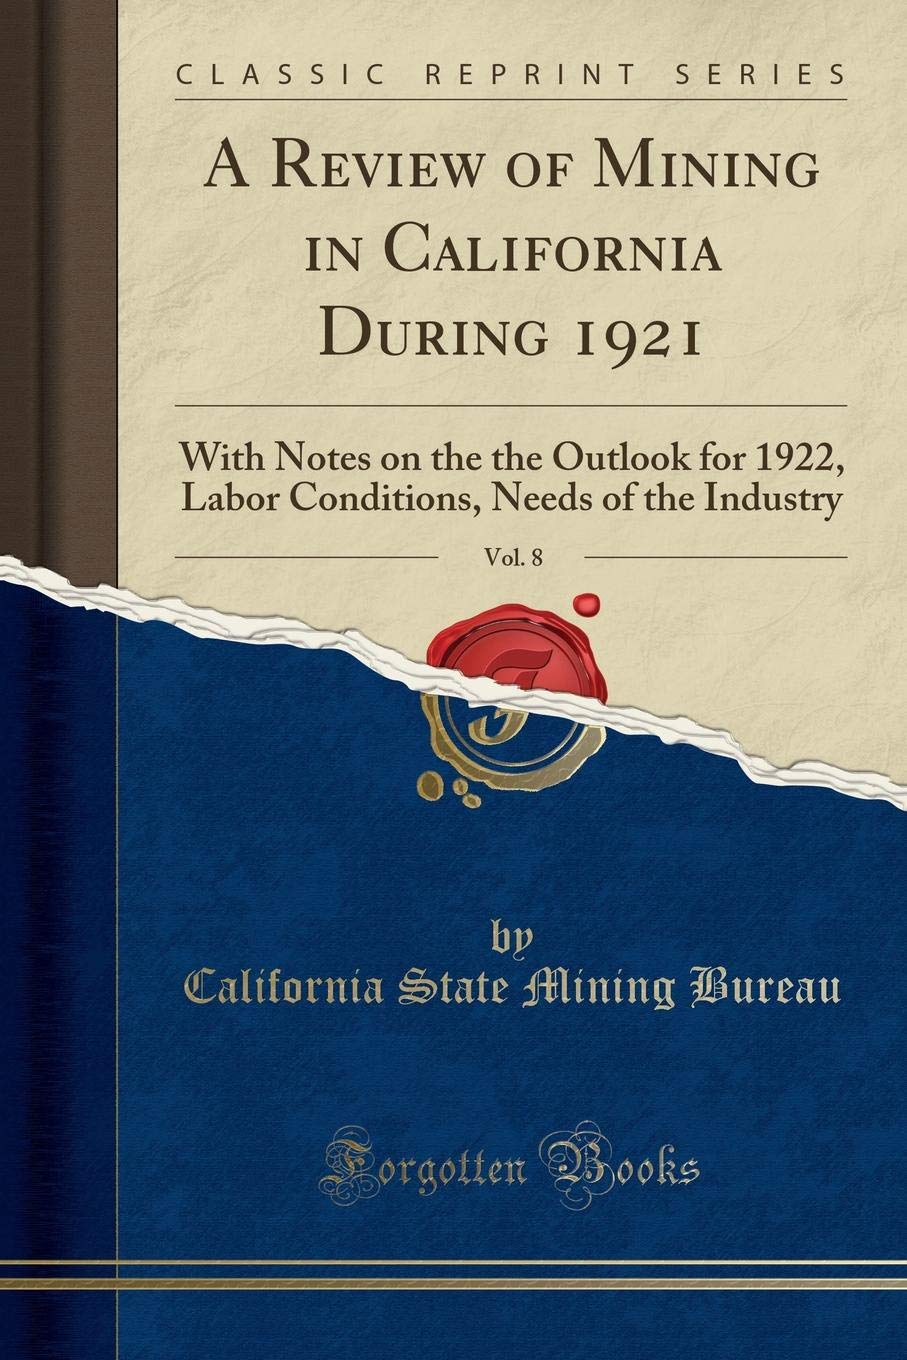 A Review of Mining in California During 1921, Vol. 8: With Notes on the the Outlook for 1922, Labor Conditions, Needs of the Industry (Classic Reprint) pdf